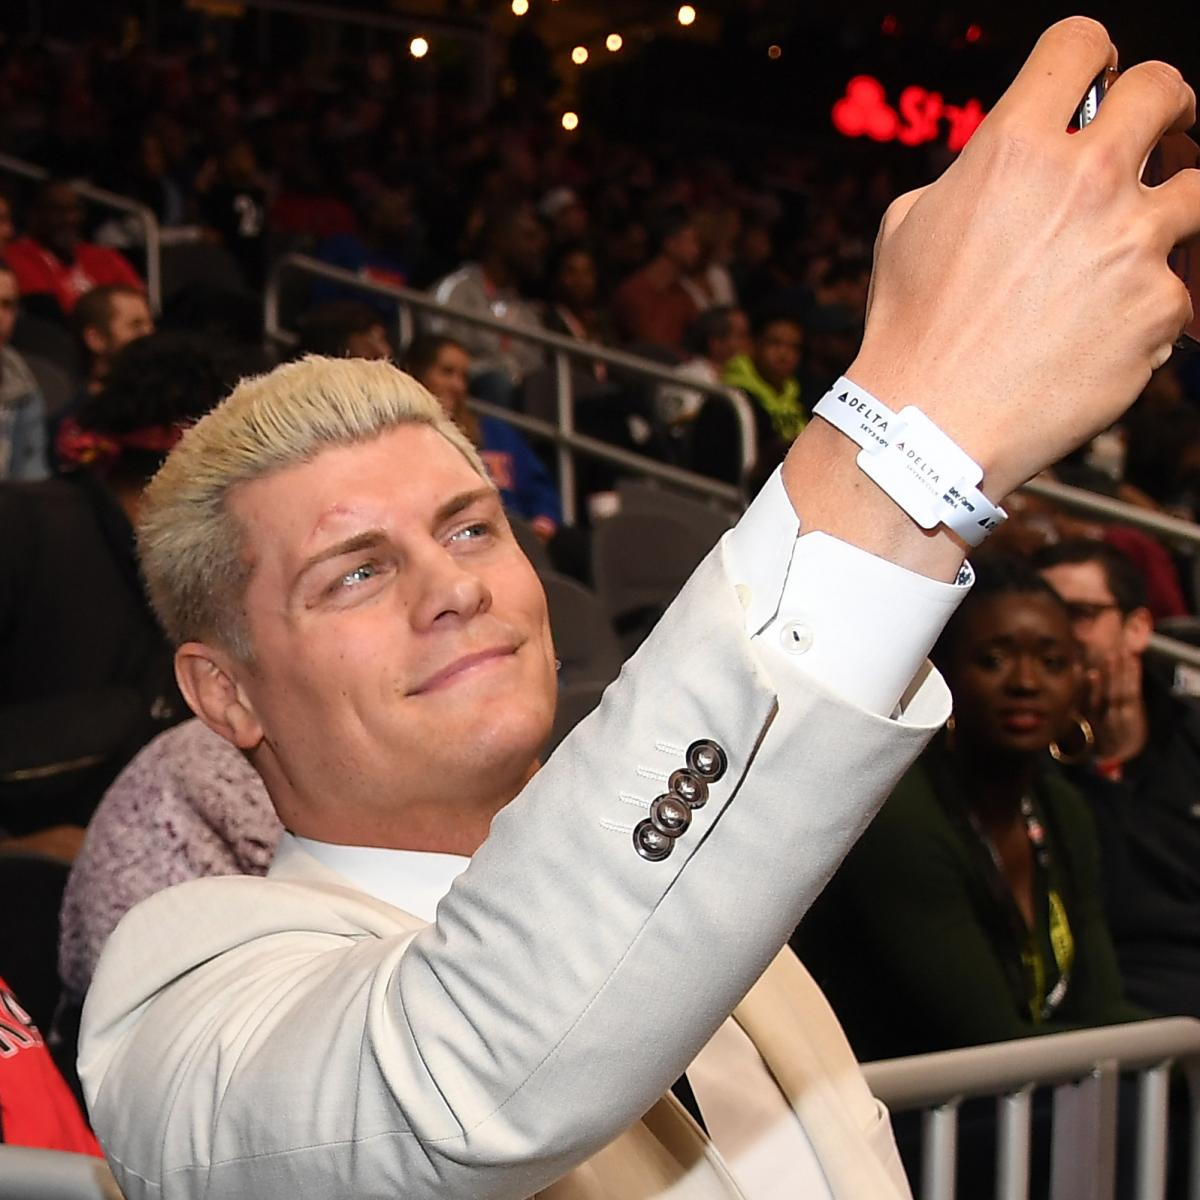 AEW Dynamite Tops WWE NXT in Ratings Battle for 8th Straight Week